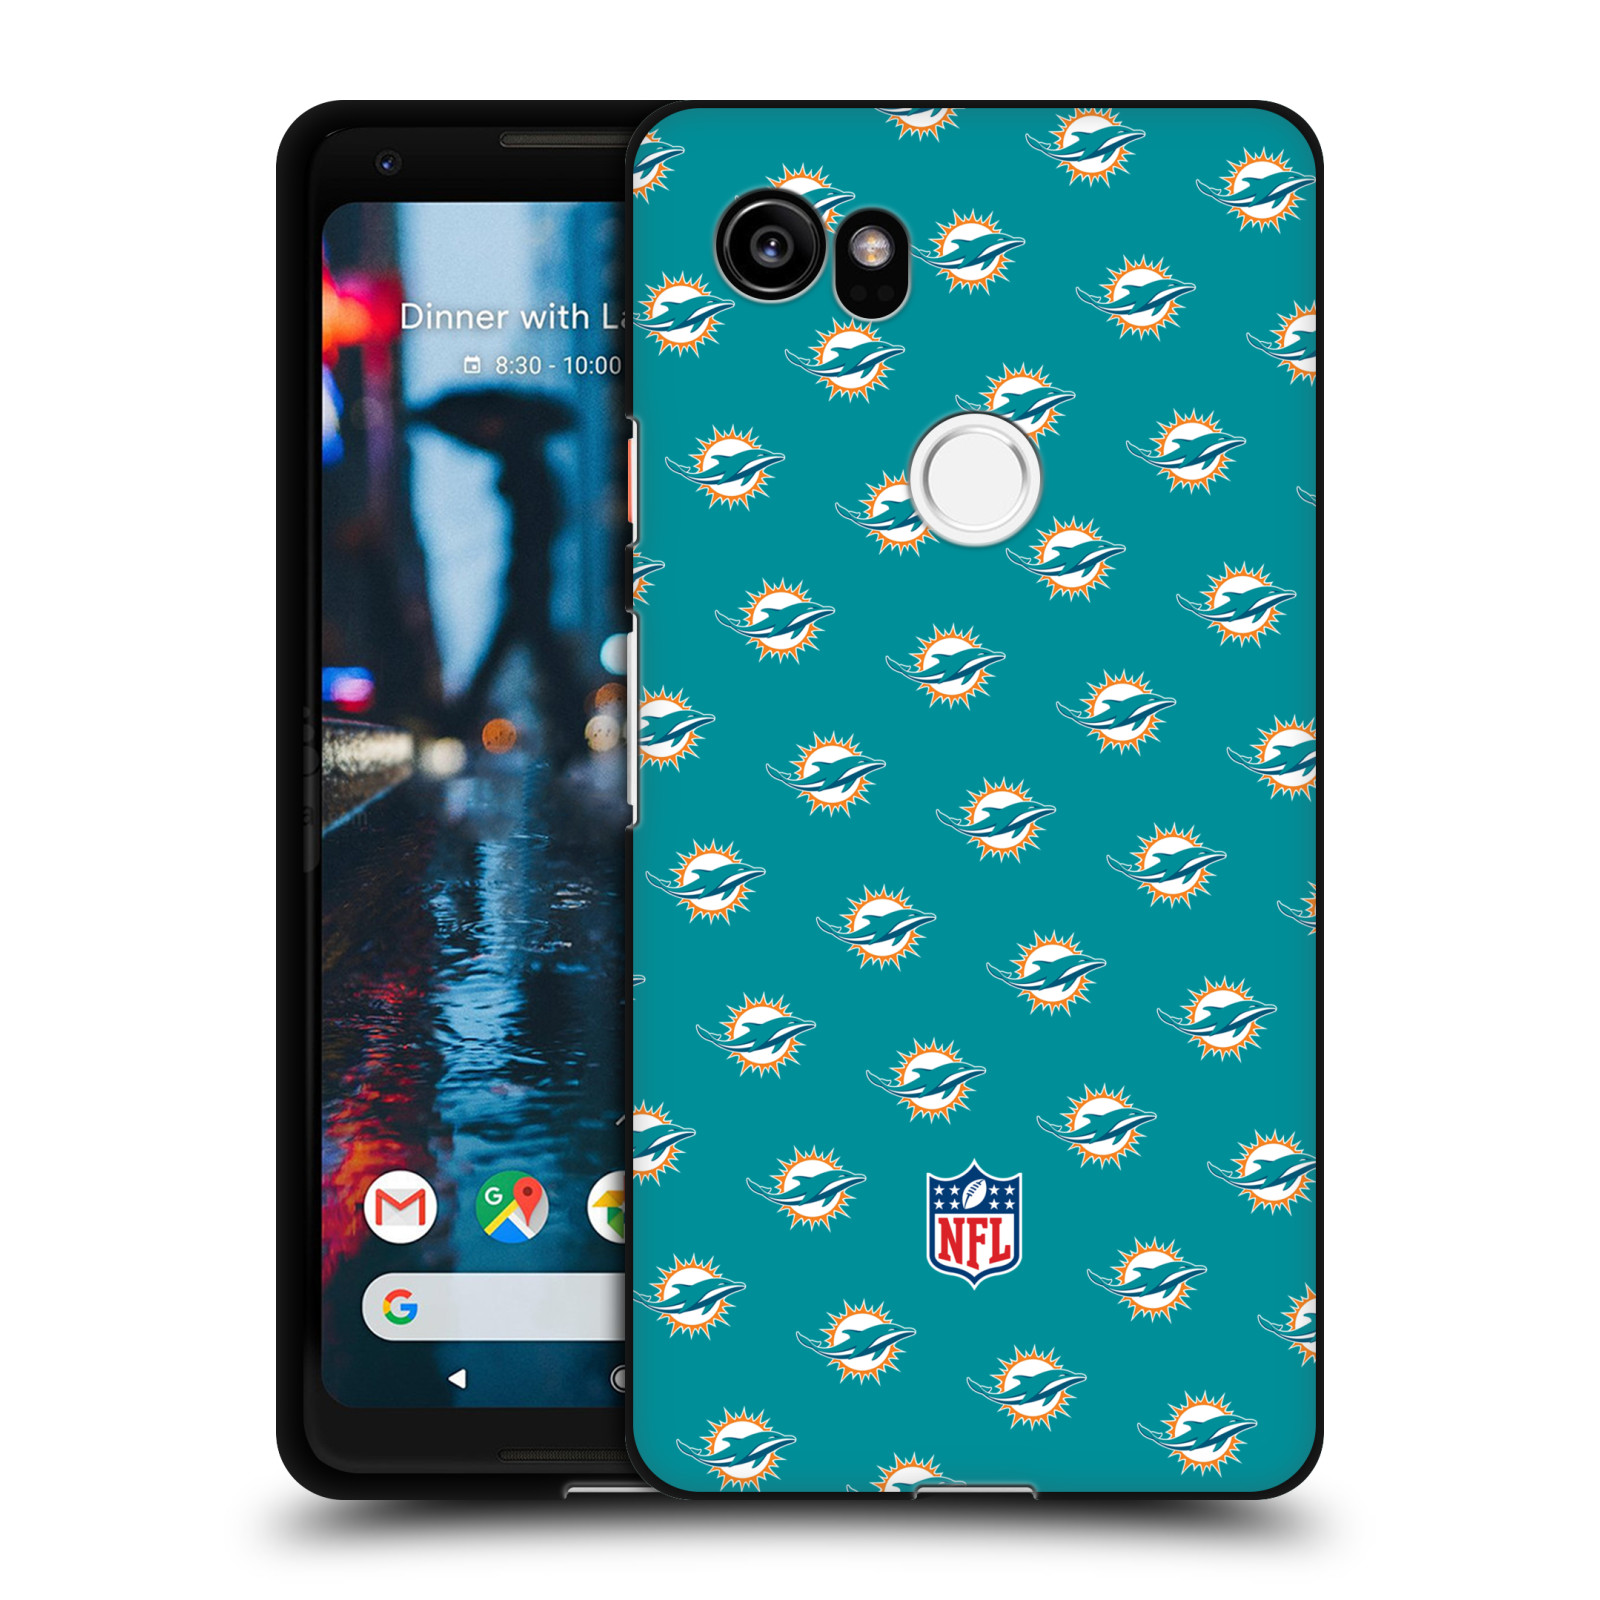 OFFICIAL-NFL-2017-18-MIAMI-DOLPHINS-BLACK-SOFT-GEL-CASE-FOR-GOOGLE-PHONES